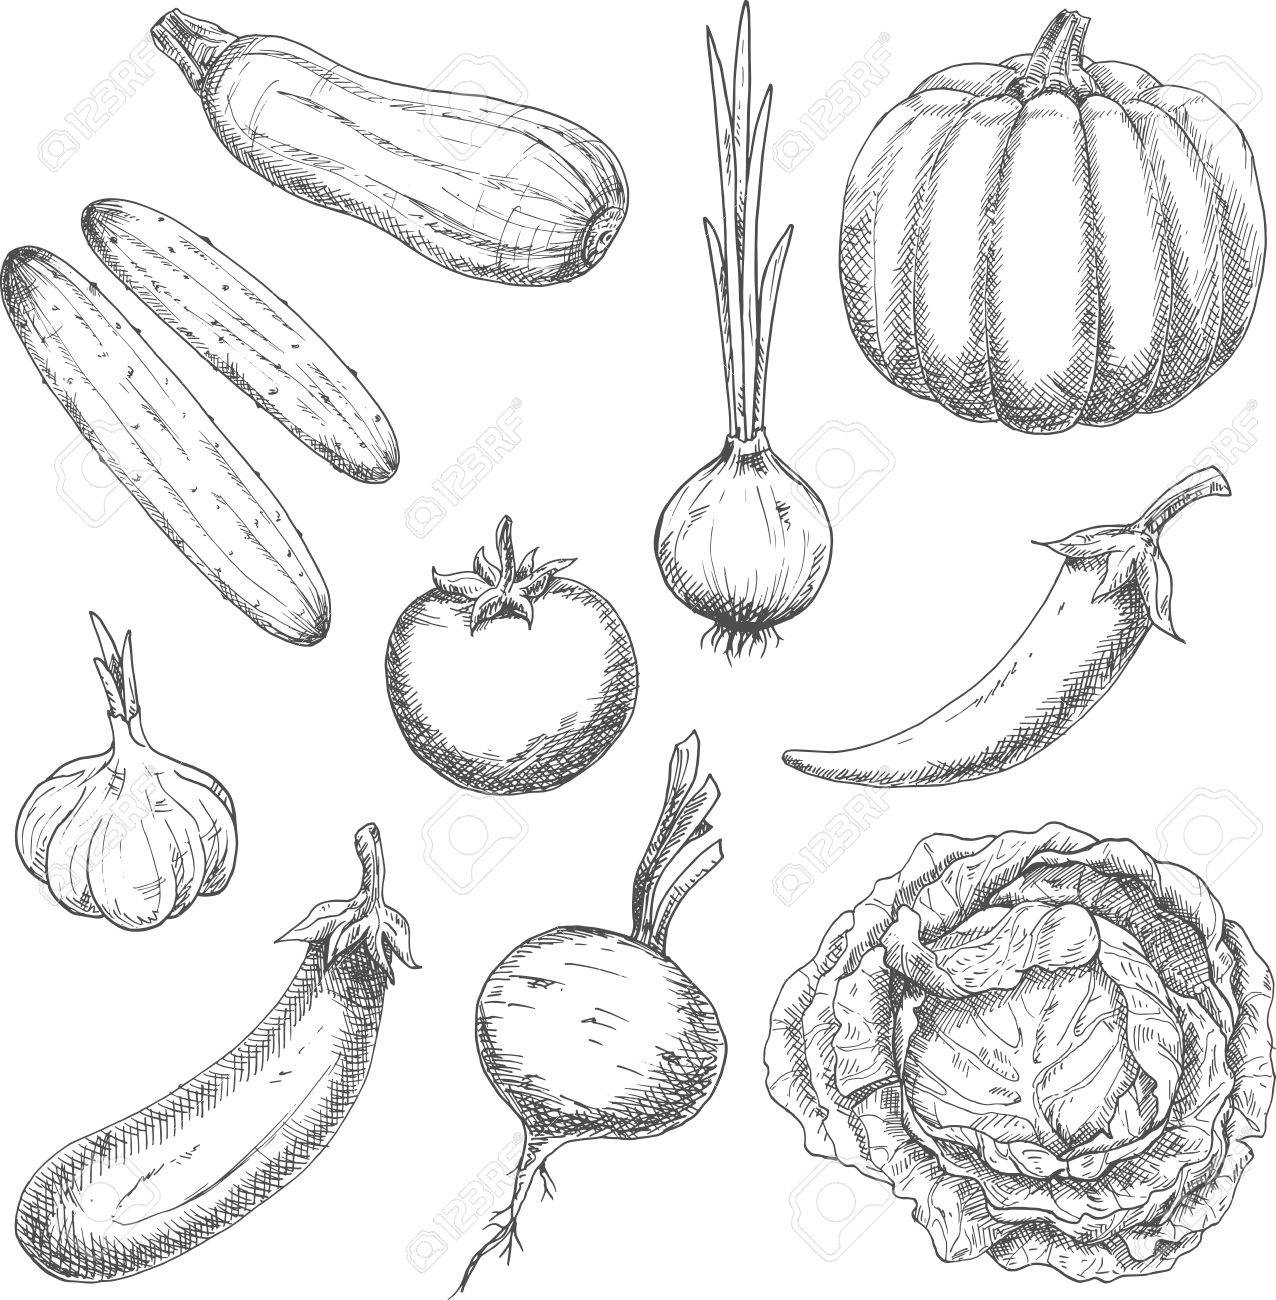 wholesome organically grown farm vegetables sketch symbols with